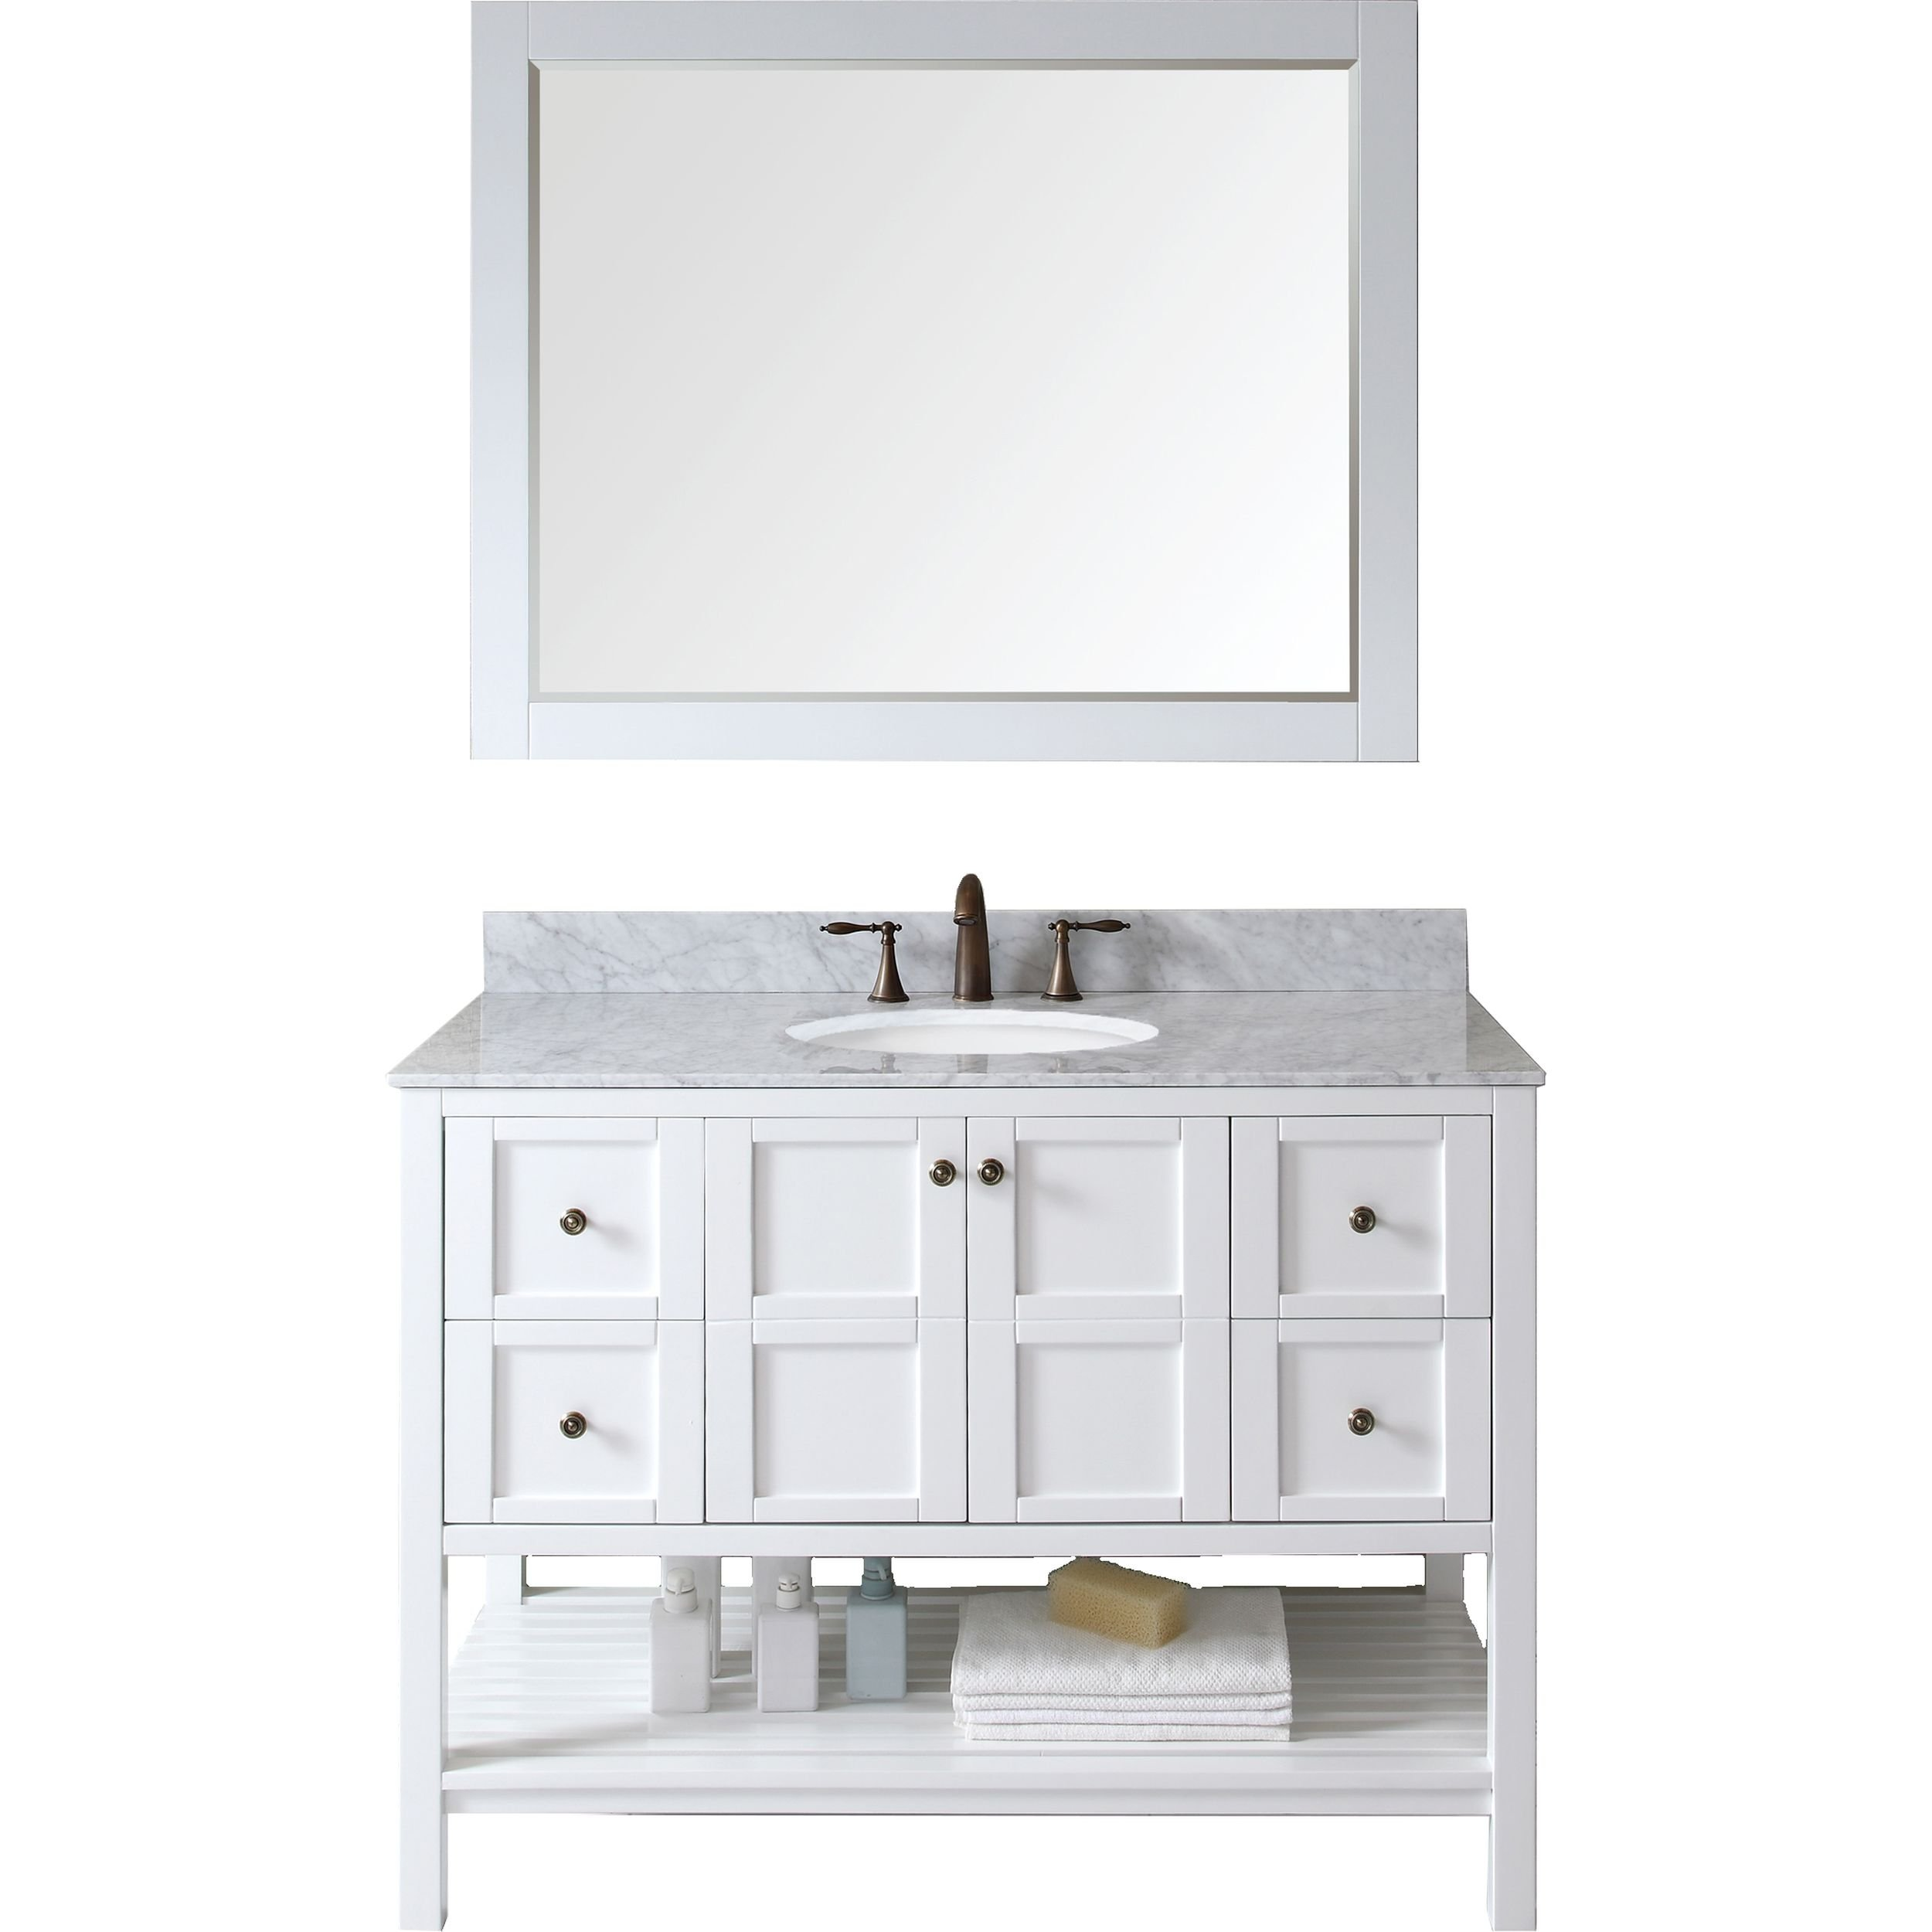 Virtu USA ES-30048-WMRO-WH Not Applicable Winterfell 48 inch single Bathroom Vanity In White with Marble Top & Round Sink with Mirror